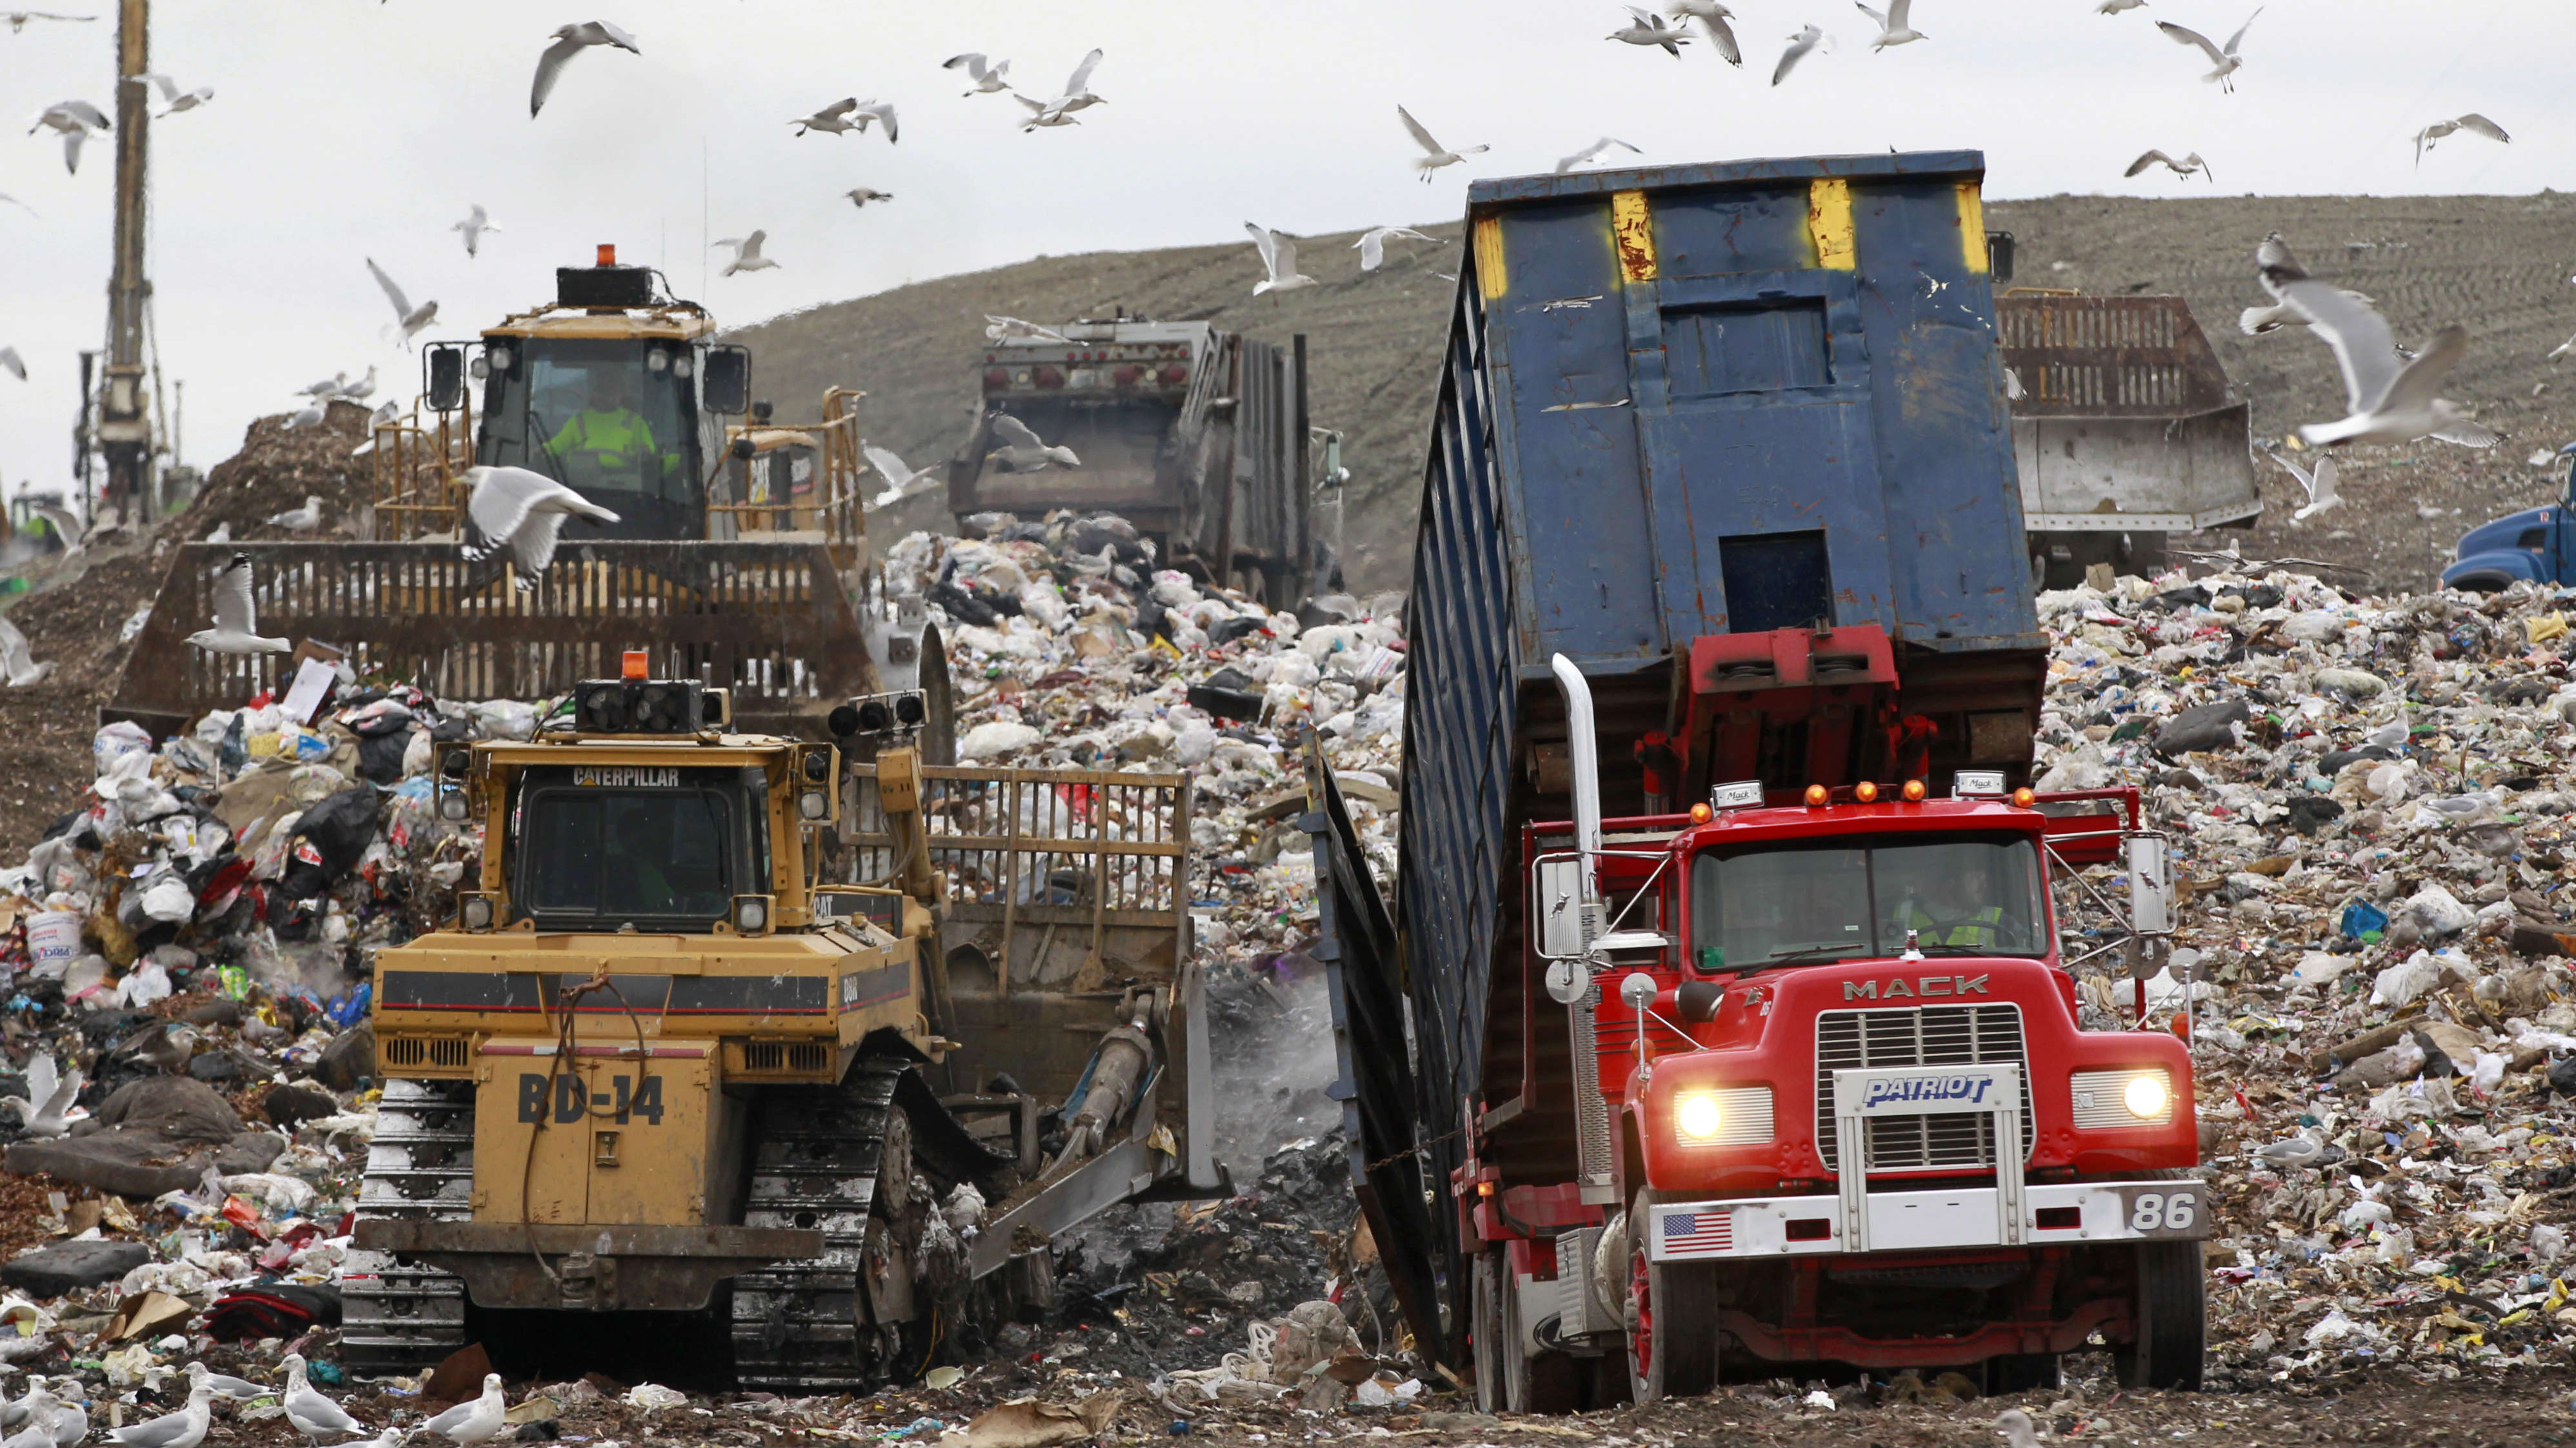 Garbage trucks, right and behind, empty their load as bulldozers process the waste at the Central Landfill, in Johnston, R.I., Wednesday, Dec. 14, 2011. Johnston Mayor Joseph Polisena sued the state's main landfill Wednesday over noxious odors that have plagued residents for several weeks. (AP Photo/Steven Senne)